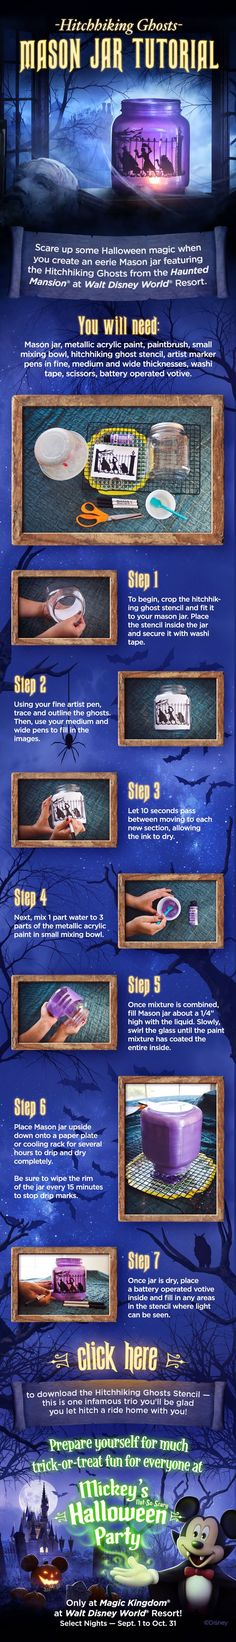 DIY Haunted Mansion mason jar tutorial! Mix 1 part water to 3 parts metallic acrylic paint to coat inside of jars, use Explore to cut vinyl to decorate outside of jar